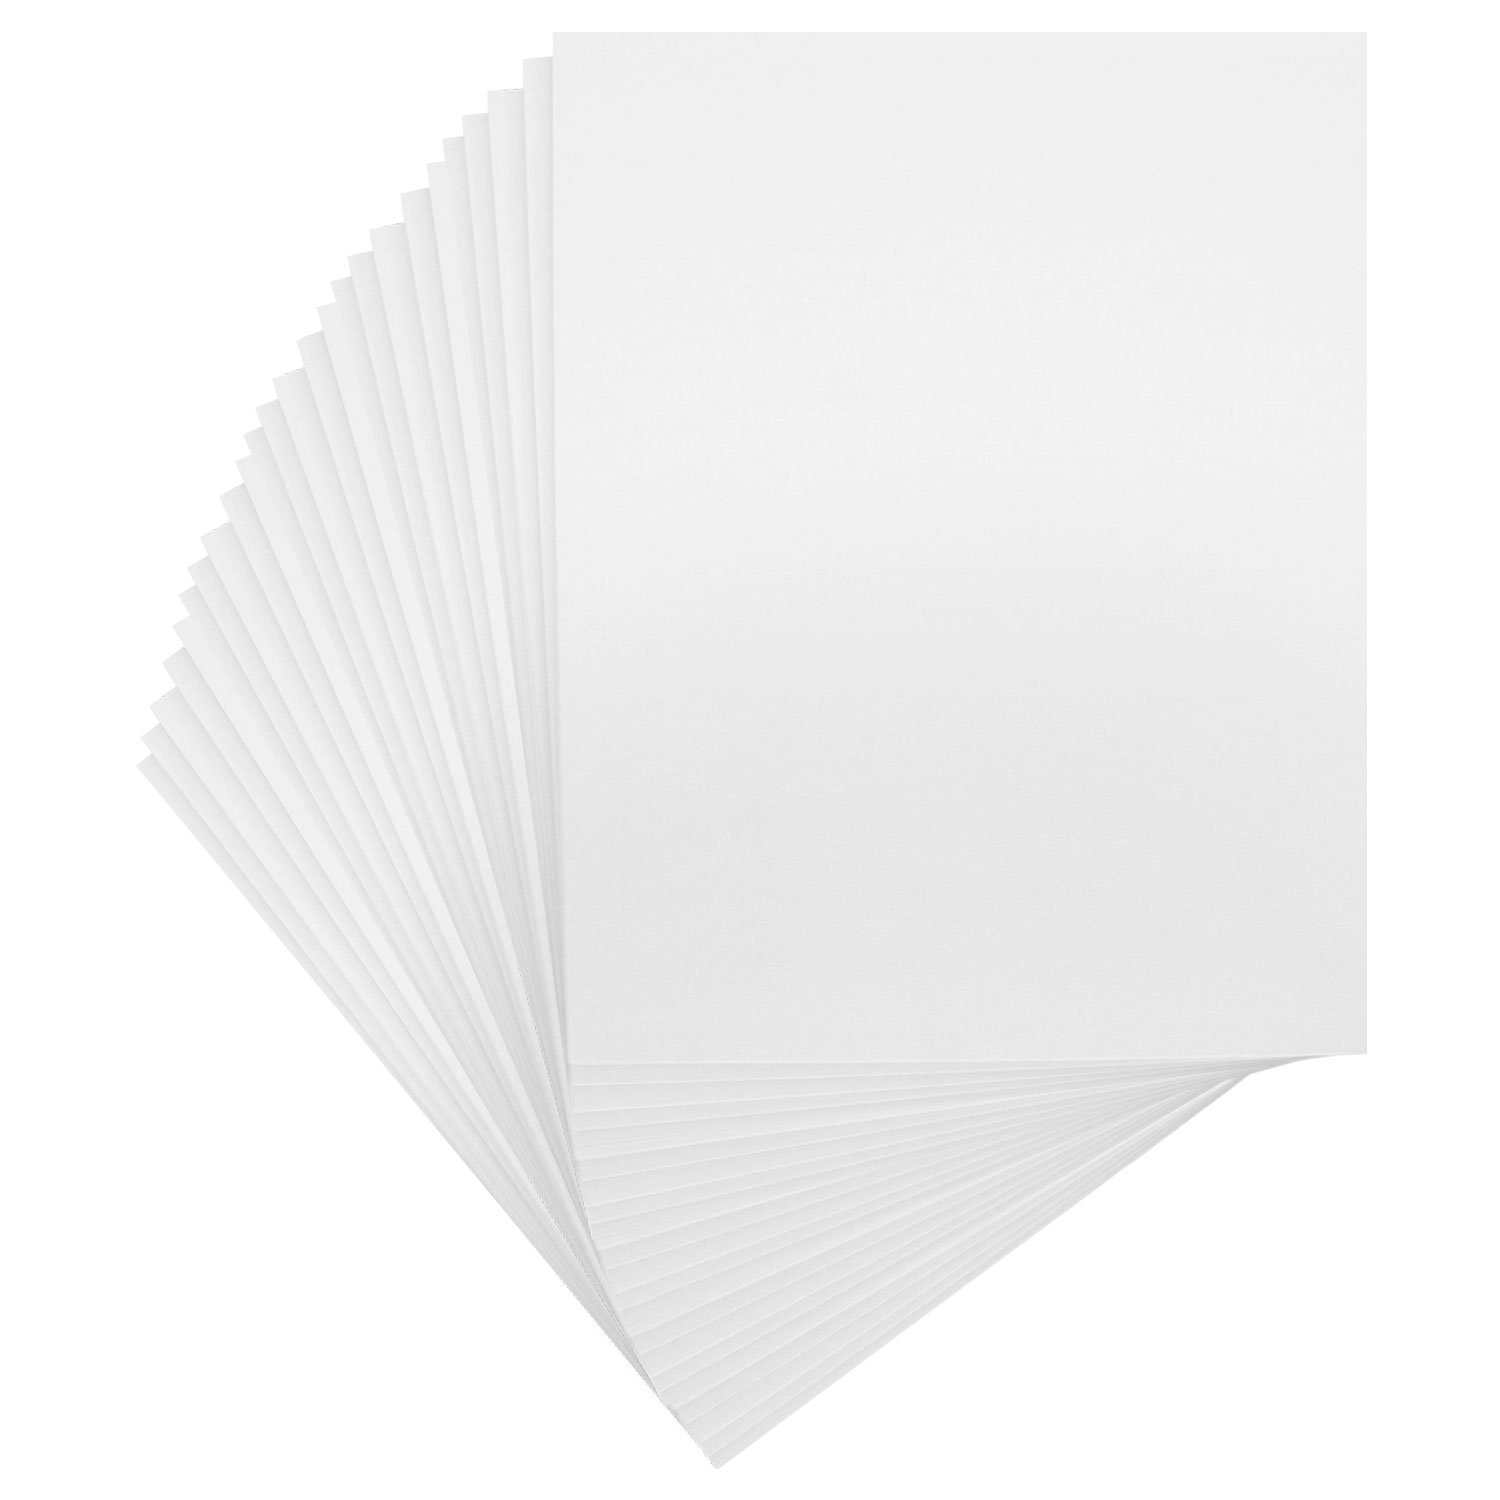 US Art Supply Art Mats Acid-Free Pre-Cut 16x20 Black Picture Mat Matte Sets. Includes a Pack of 25 White Core Bevel Cut Mattes for 11x14 Photos, Pack of 25 Backers & 25 Clear Sleeve Bags by US Art Supply (Image #3)